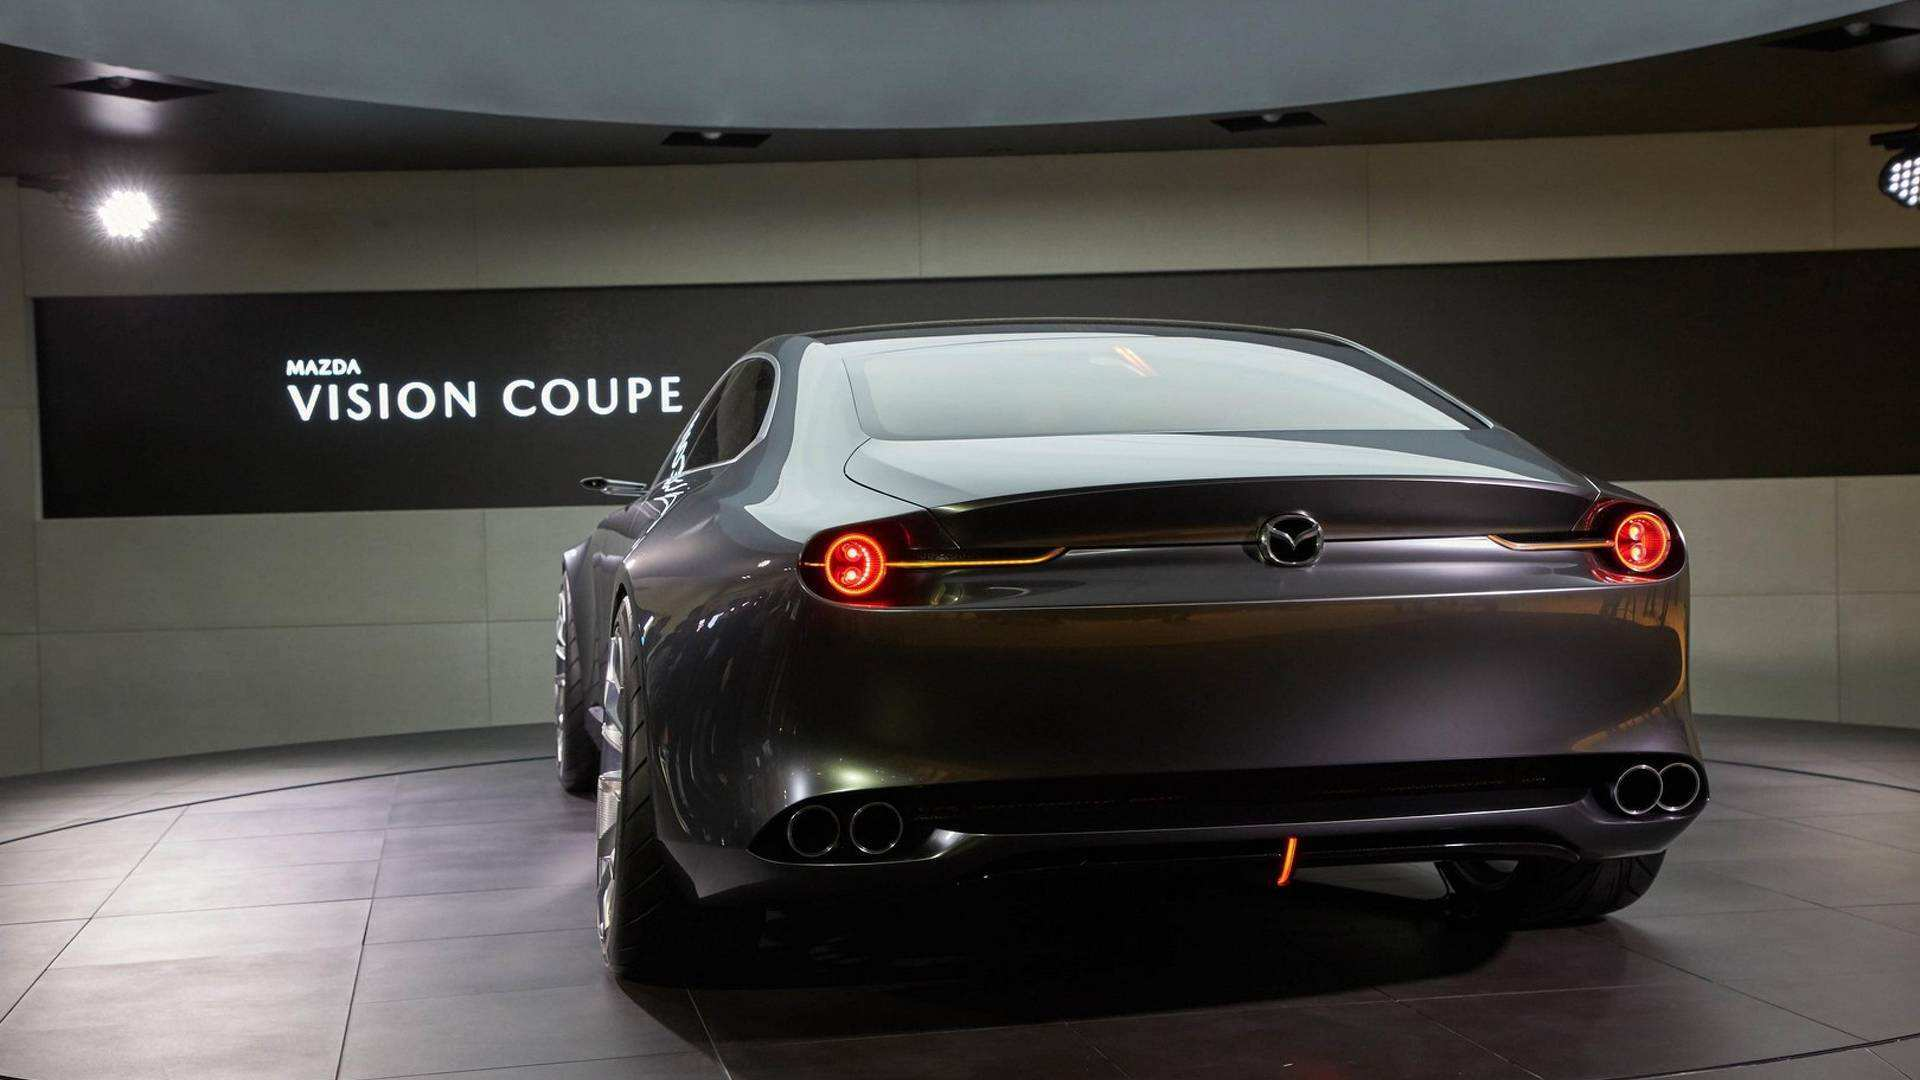 45 The Mazda 6 Vision Coupe 2020 Release Date with Mazda 6 Vision Coupe 2020